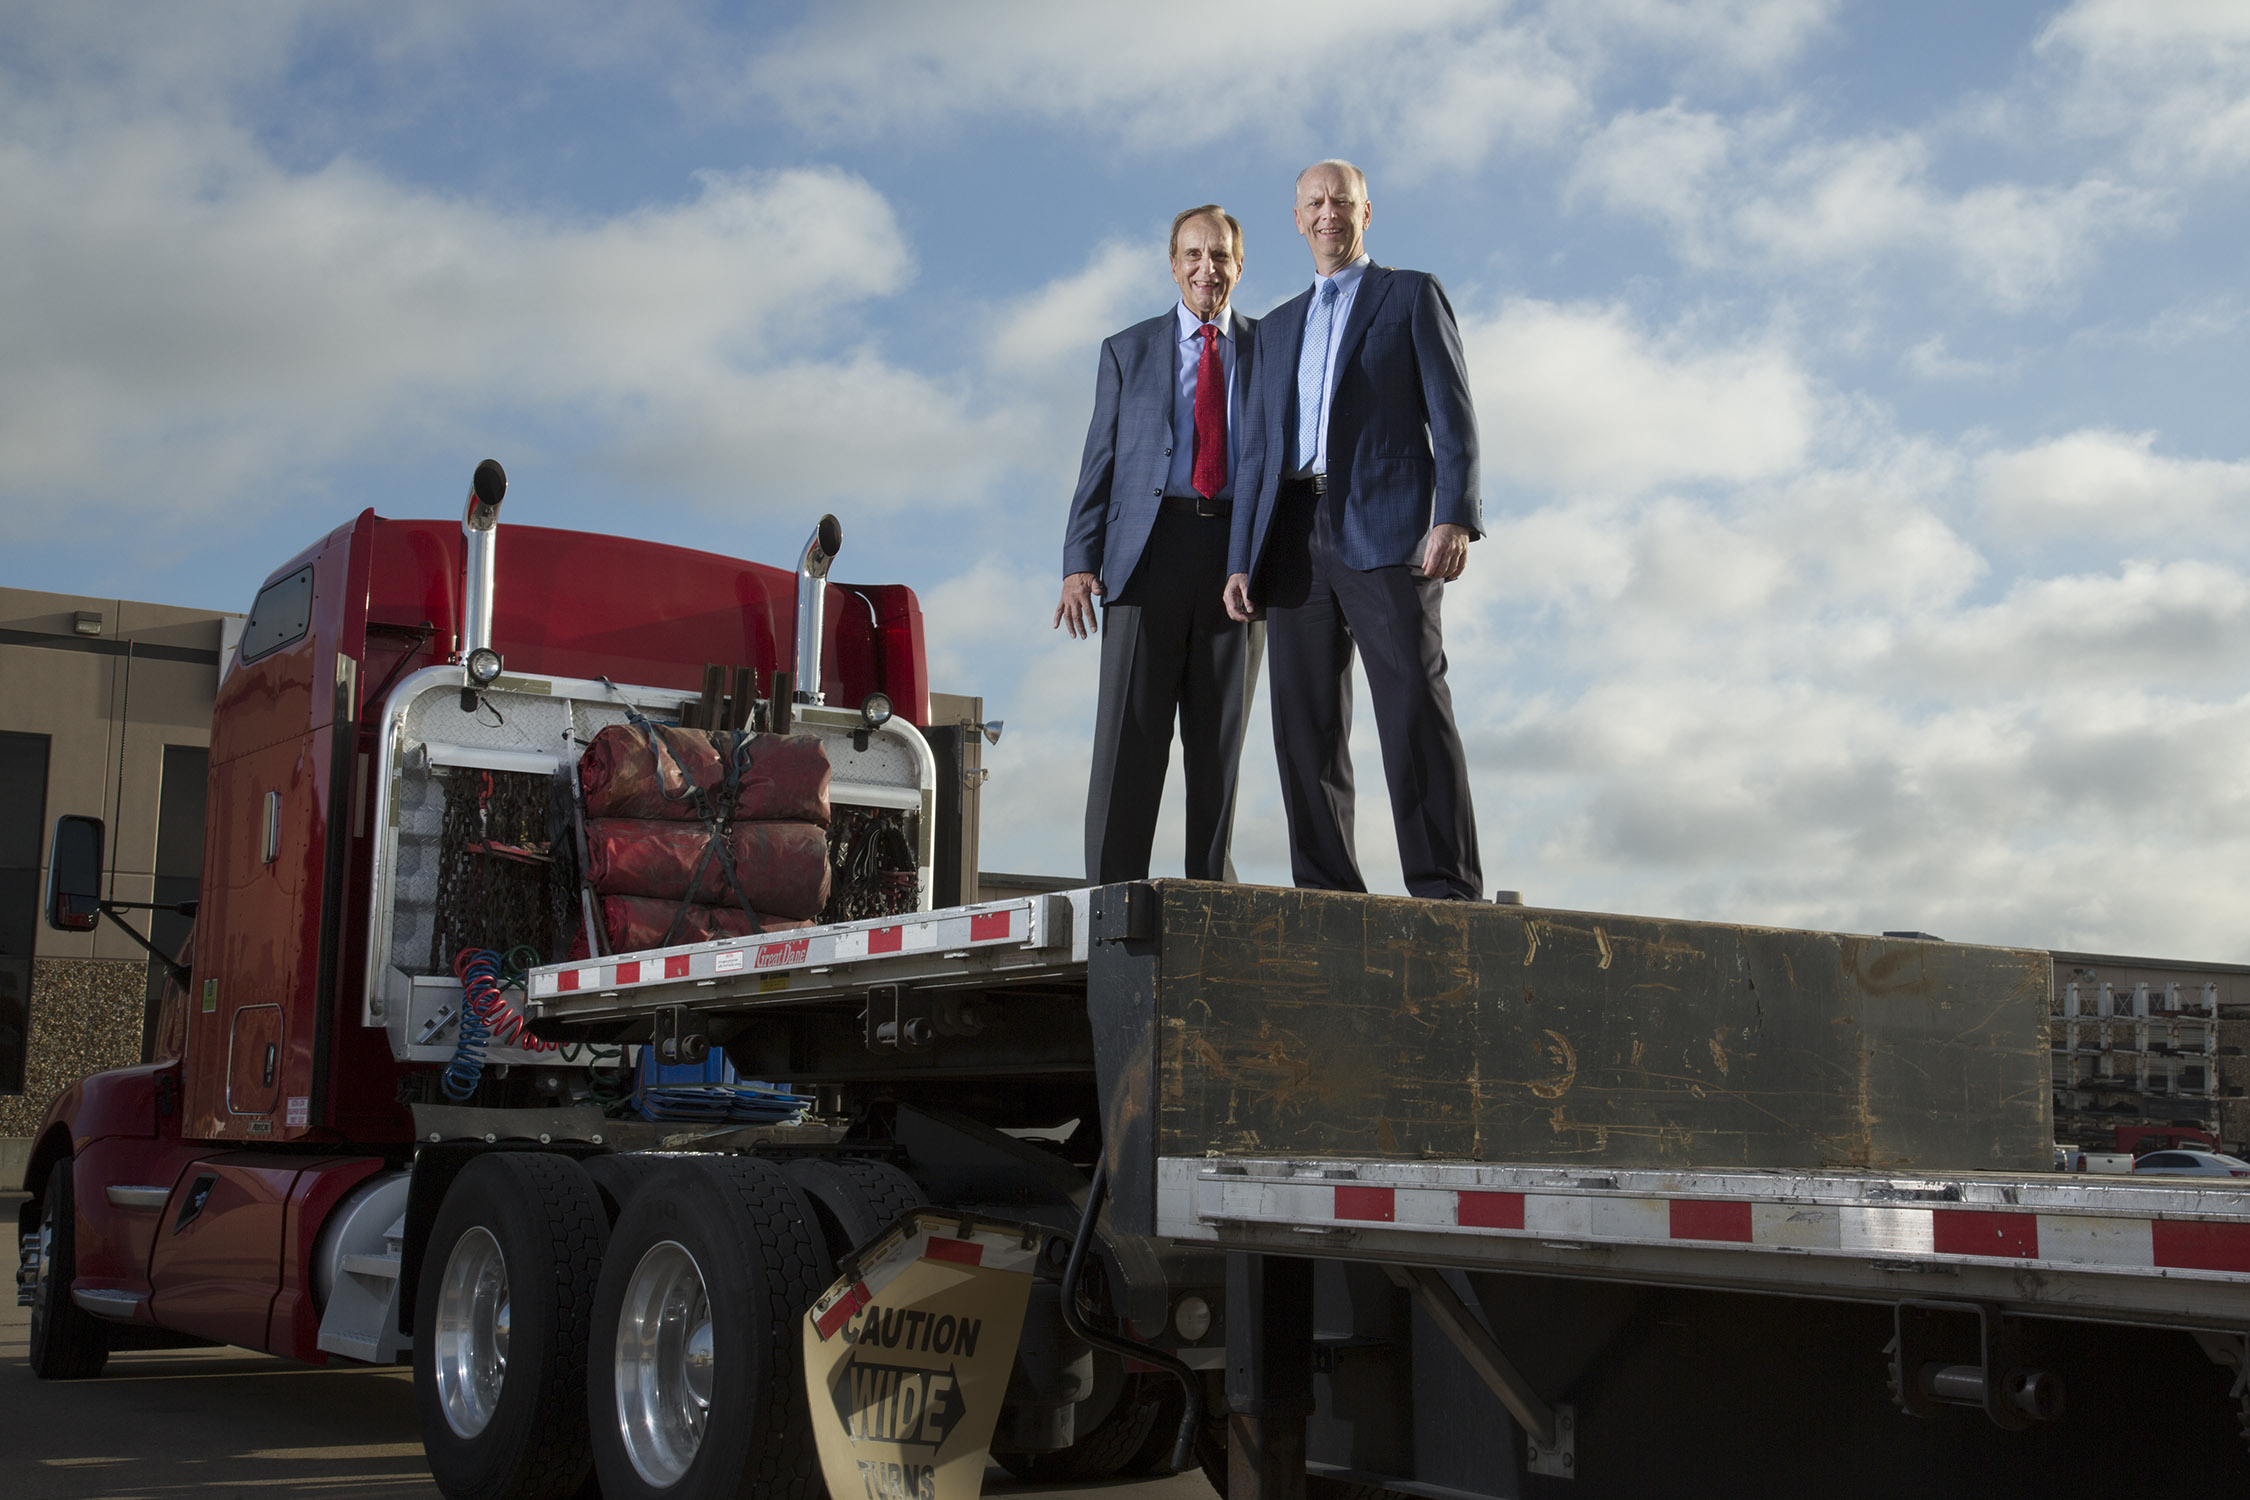 Don and Scott on Flatbed